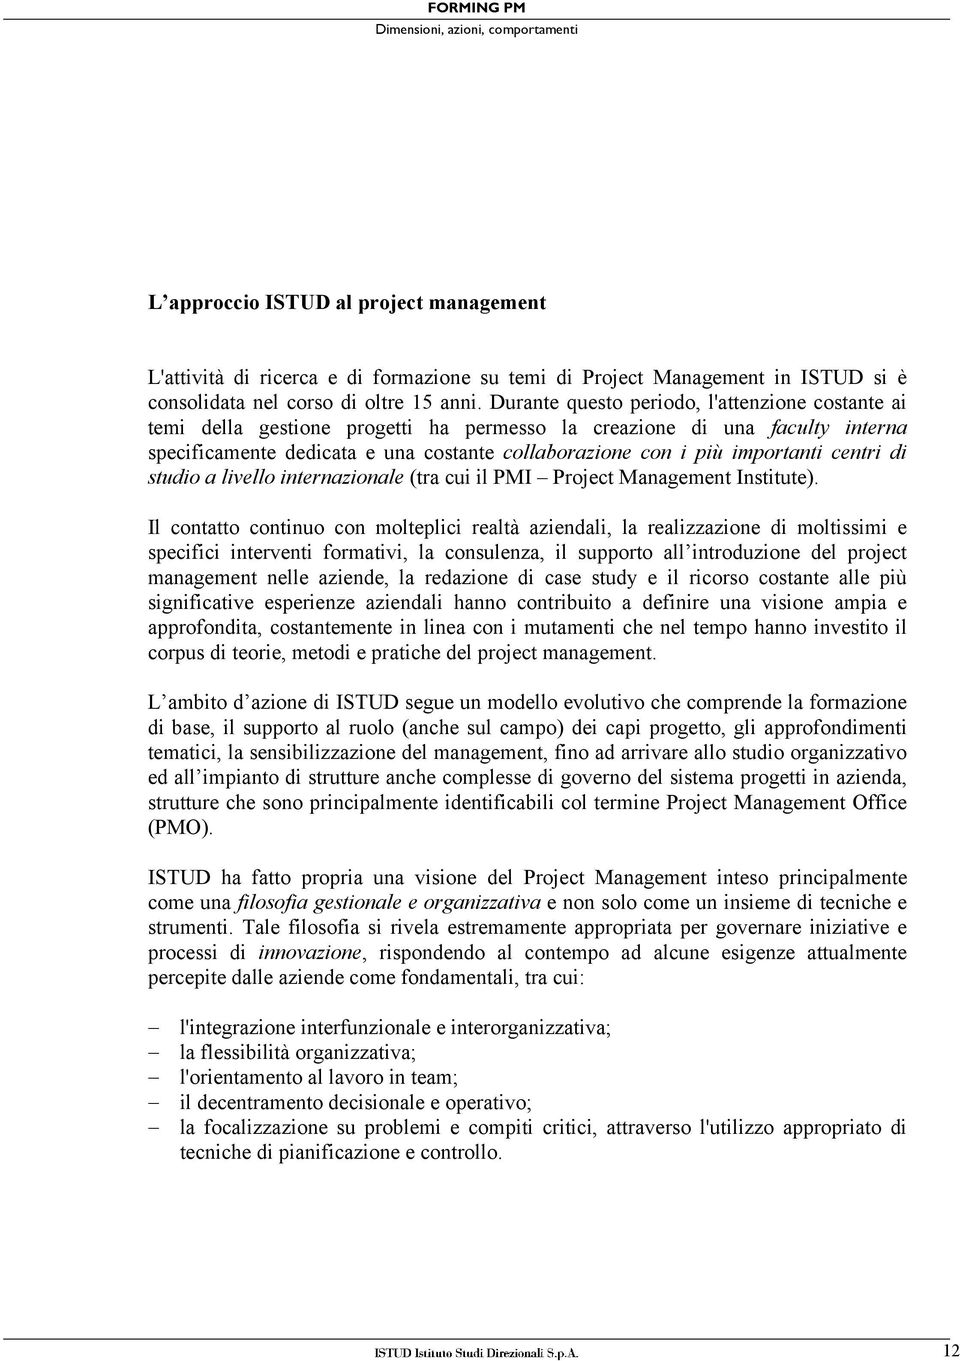 importanti centri di studio a livello internazionale (tra cui il PMI Project Management Institute).